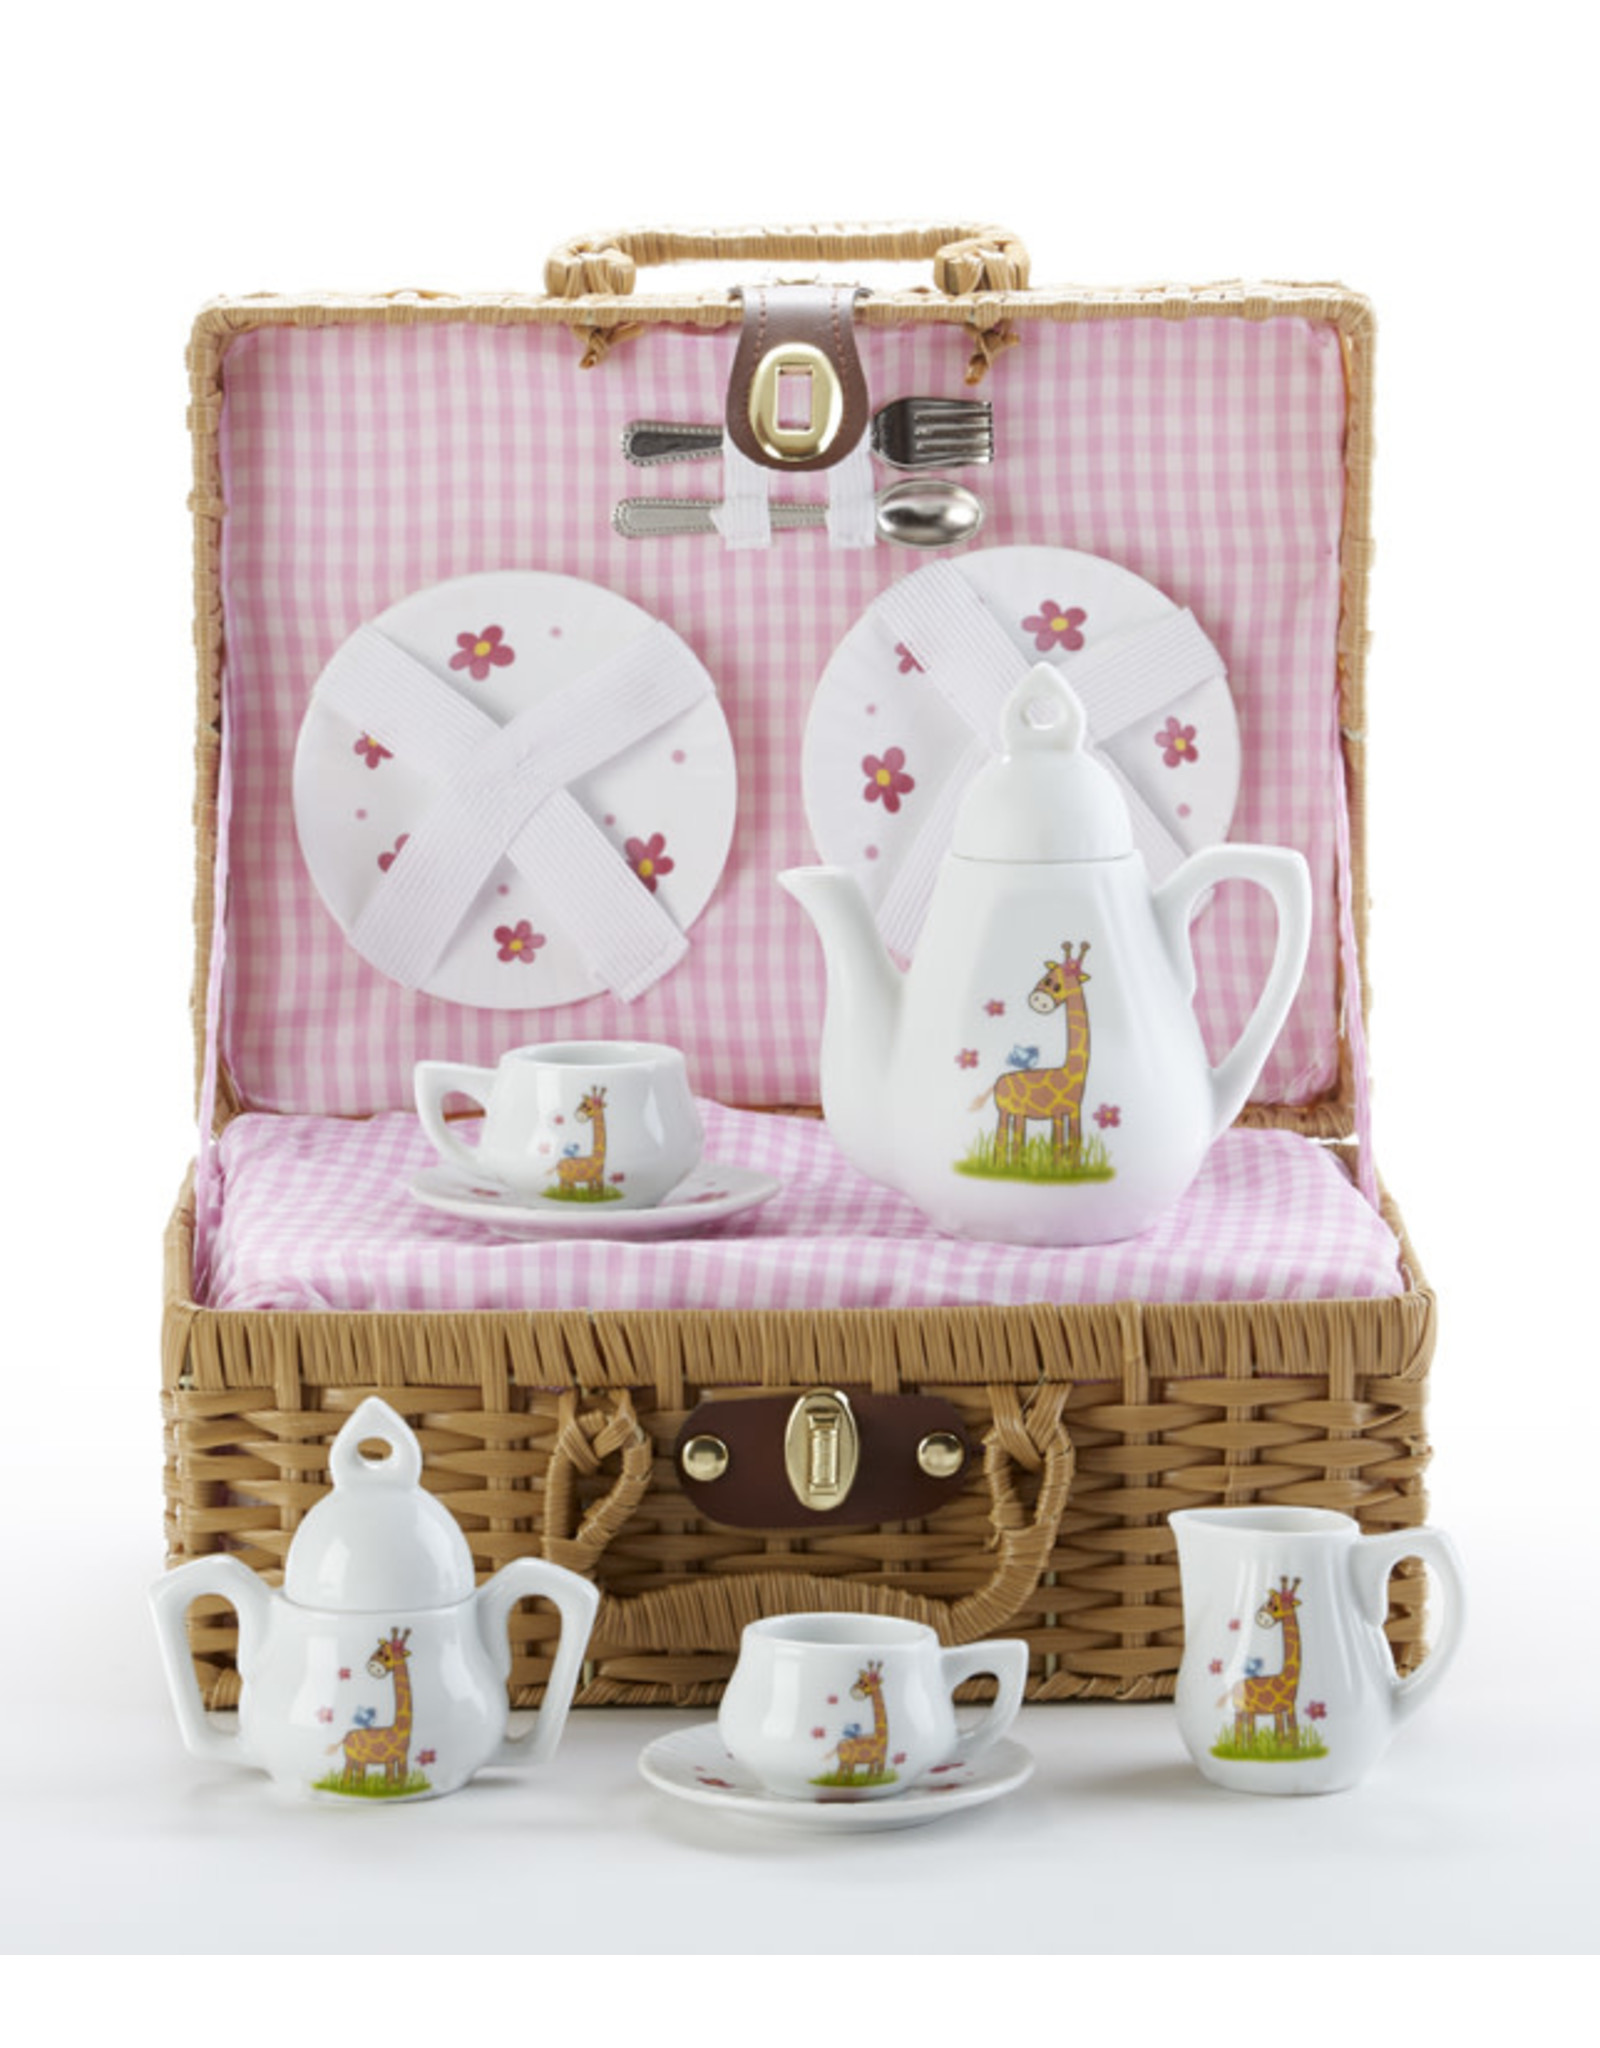 Delton GIRAFFE BASKET PORCELAIN TEA SET